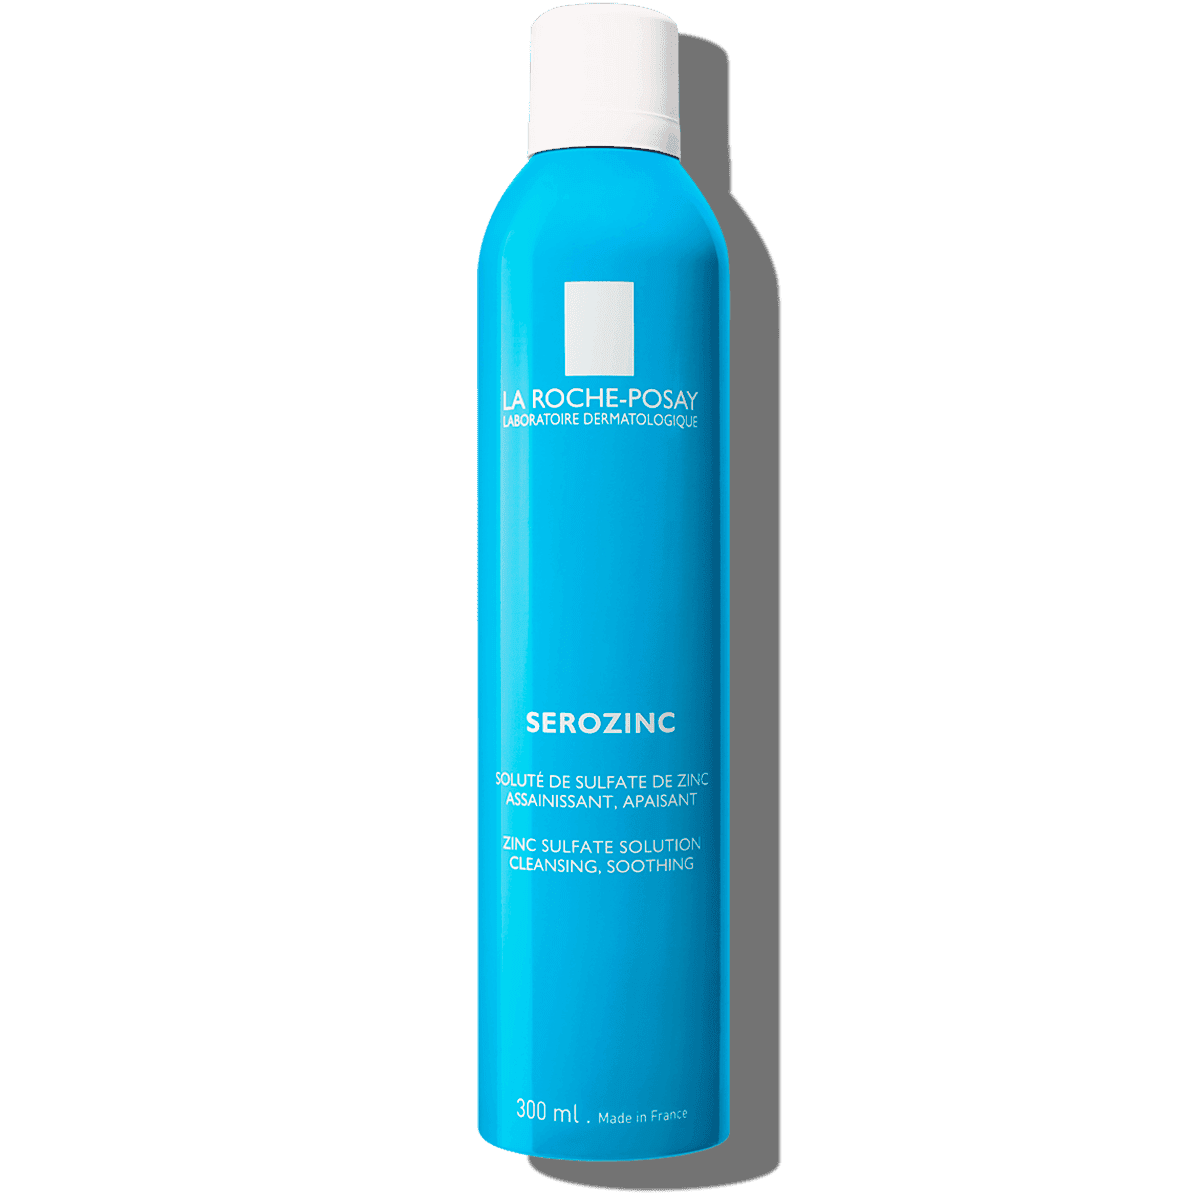 La Roche Posay ProductPage Serozinc Spray Zinc 300ml 3337875565783 Fro